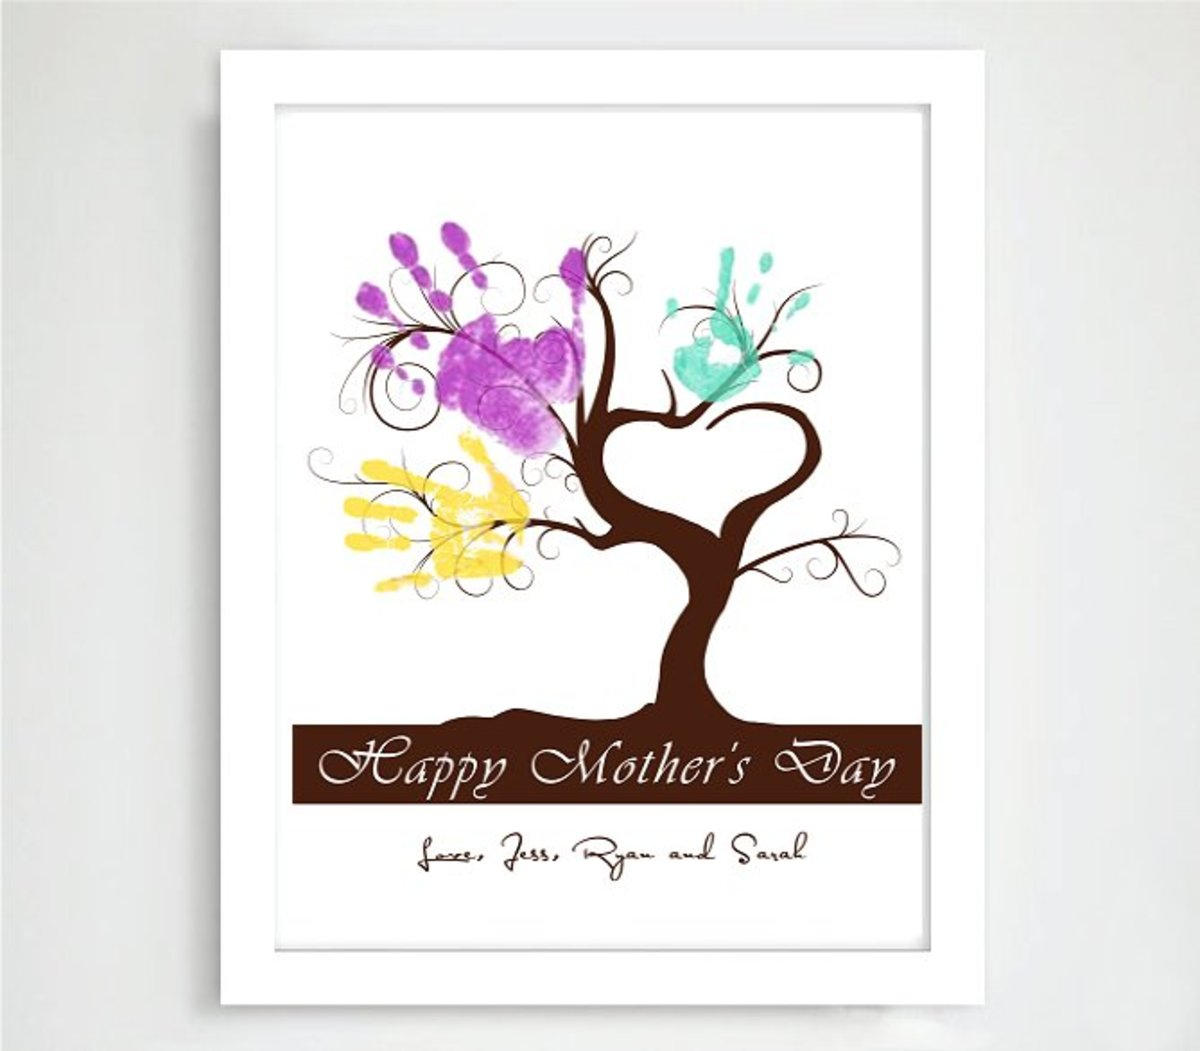 Handprint Tree Poster for Mother's Day